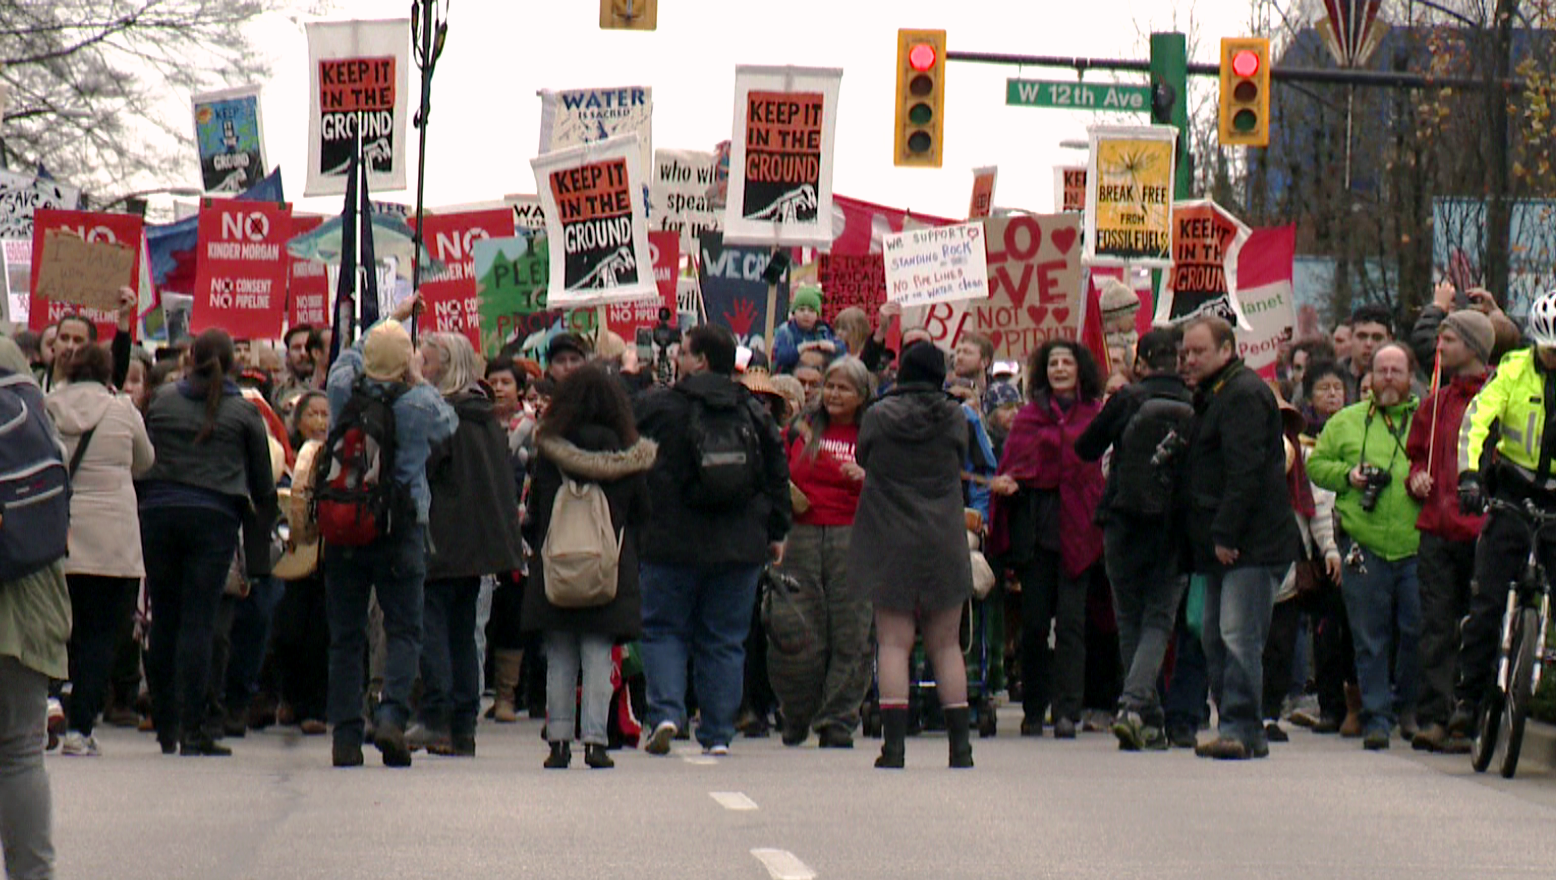 Thousands protest Kinder Morgan pipeline proposal in Vancouver